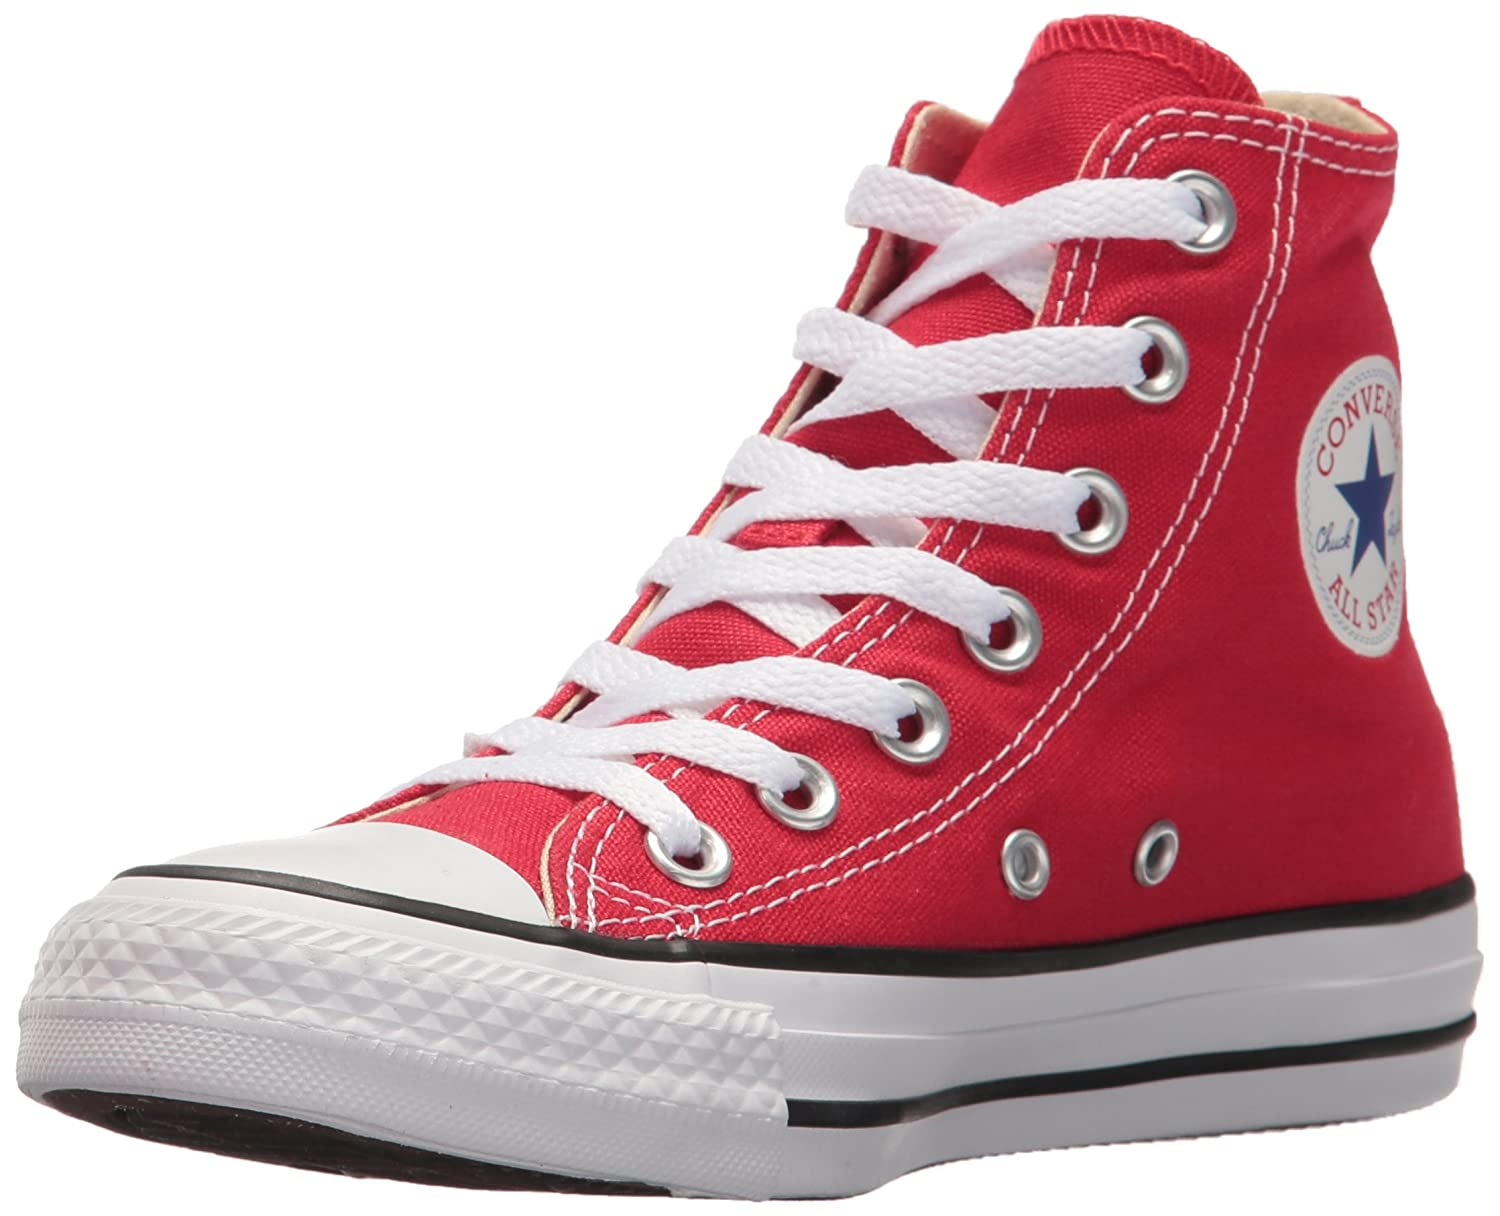 Converse Chuck Taylor All Star Seasonal Color Hi B01M00SQNM 6 Men 8 Women|Red